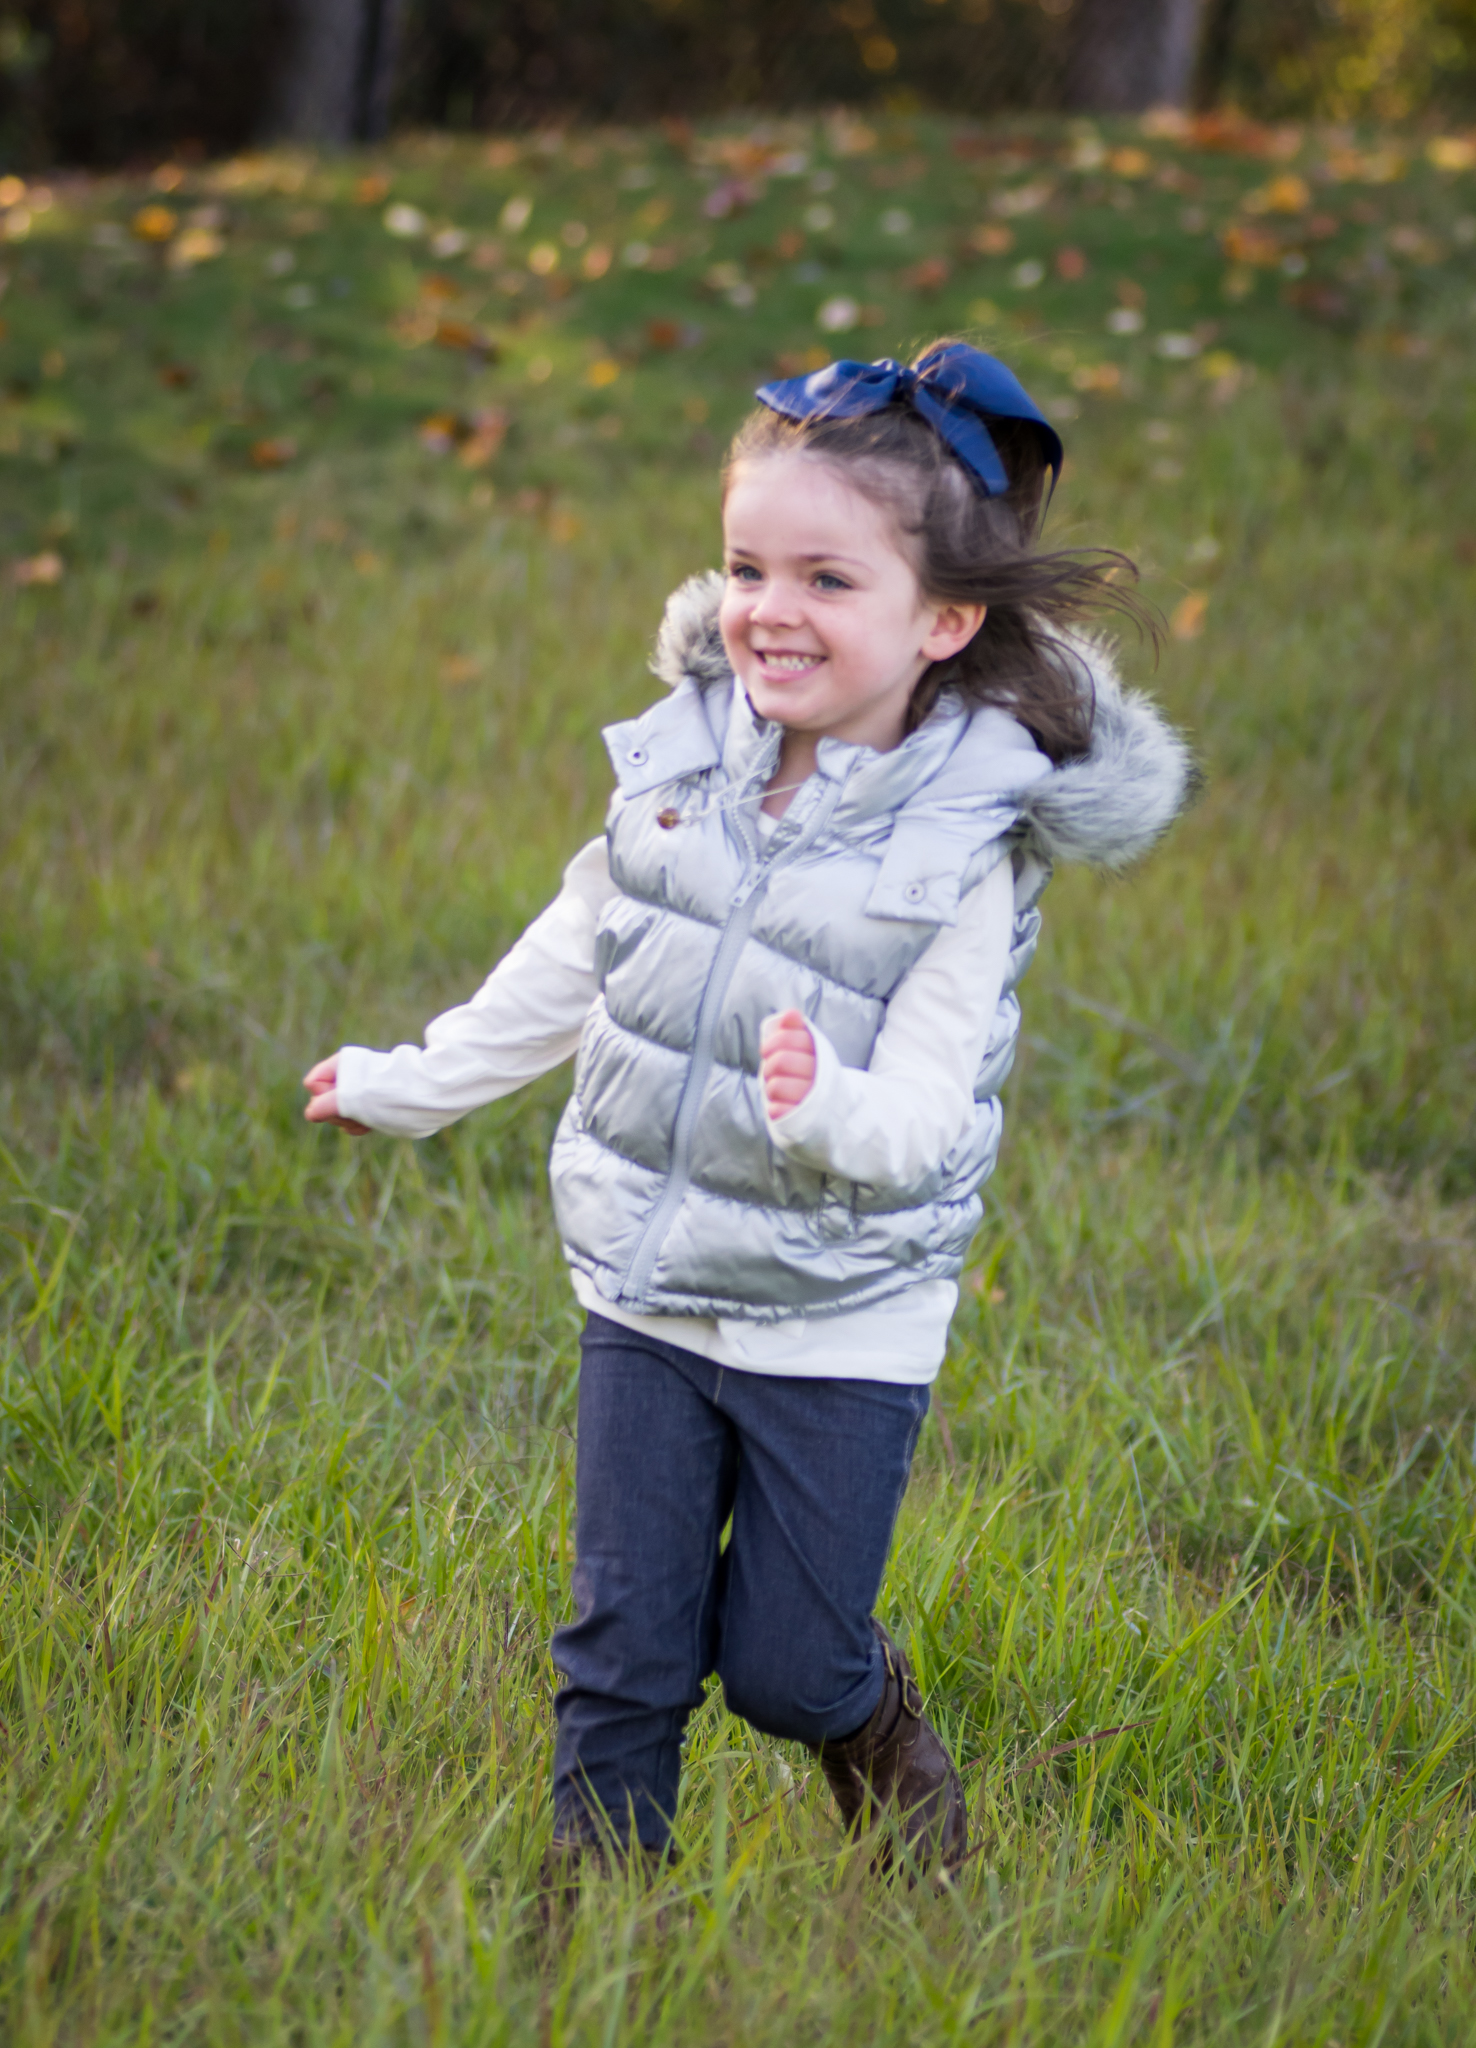 this is an image of a little girl running in the grass and smiling as she runs towards her mom